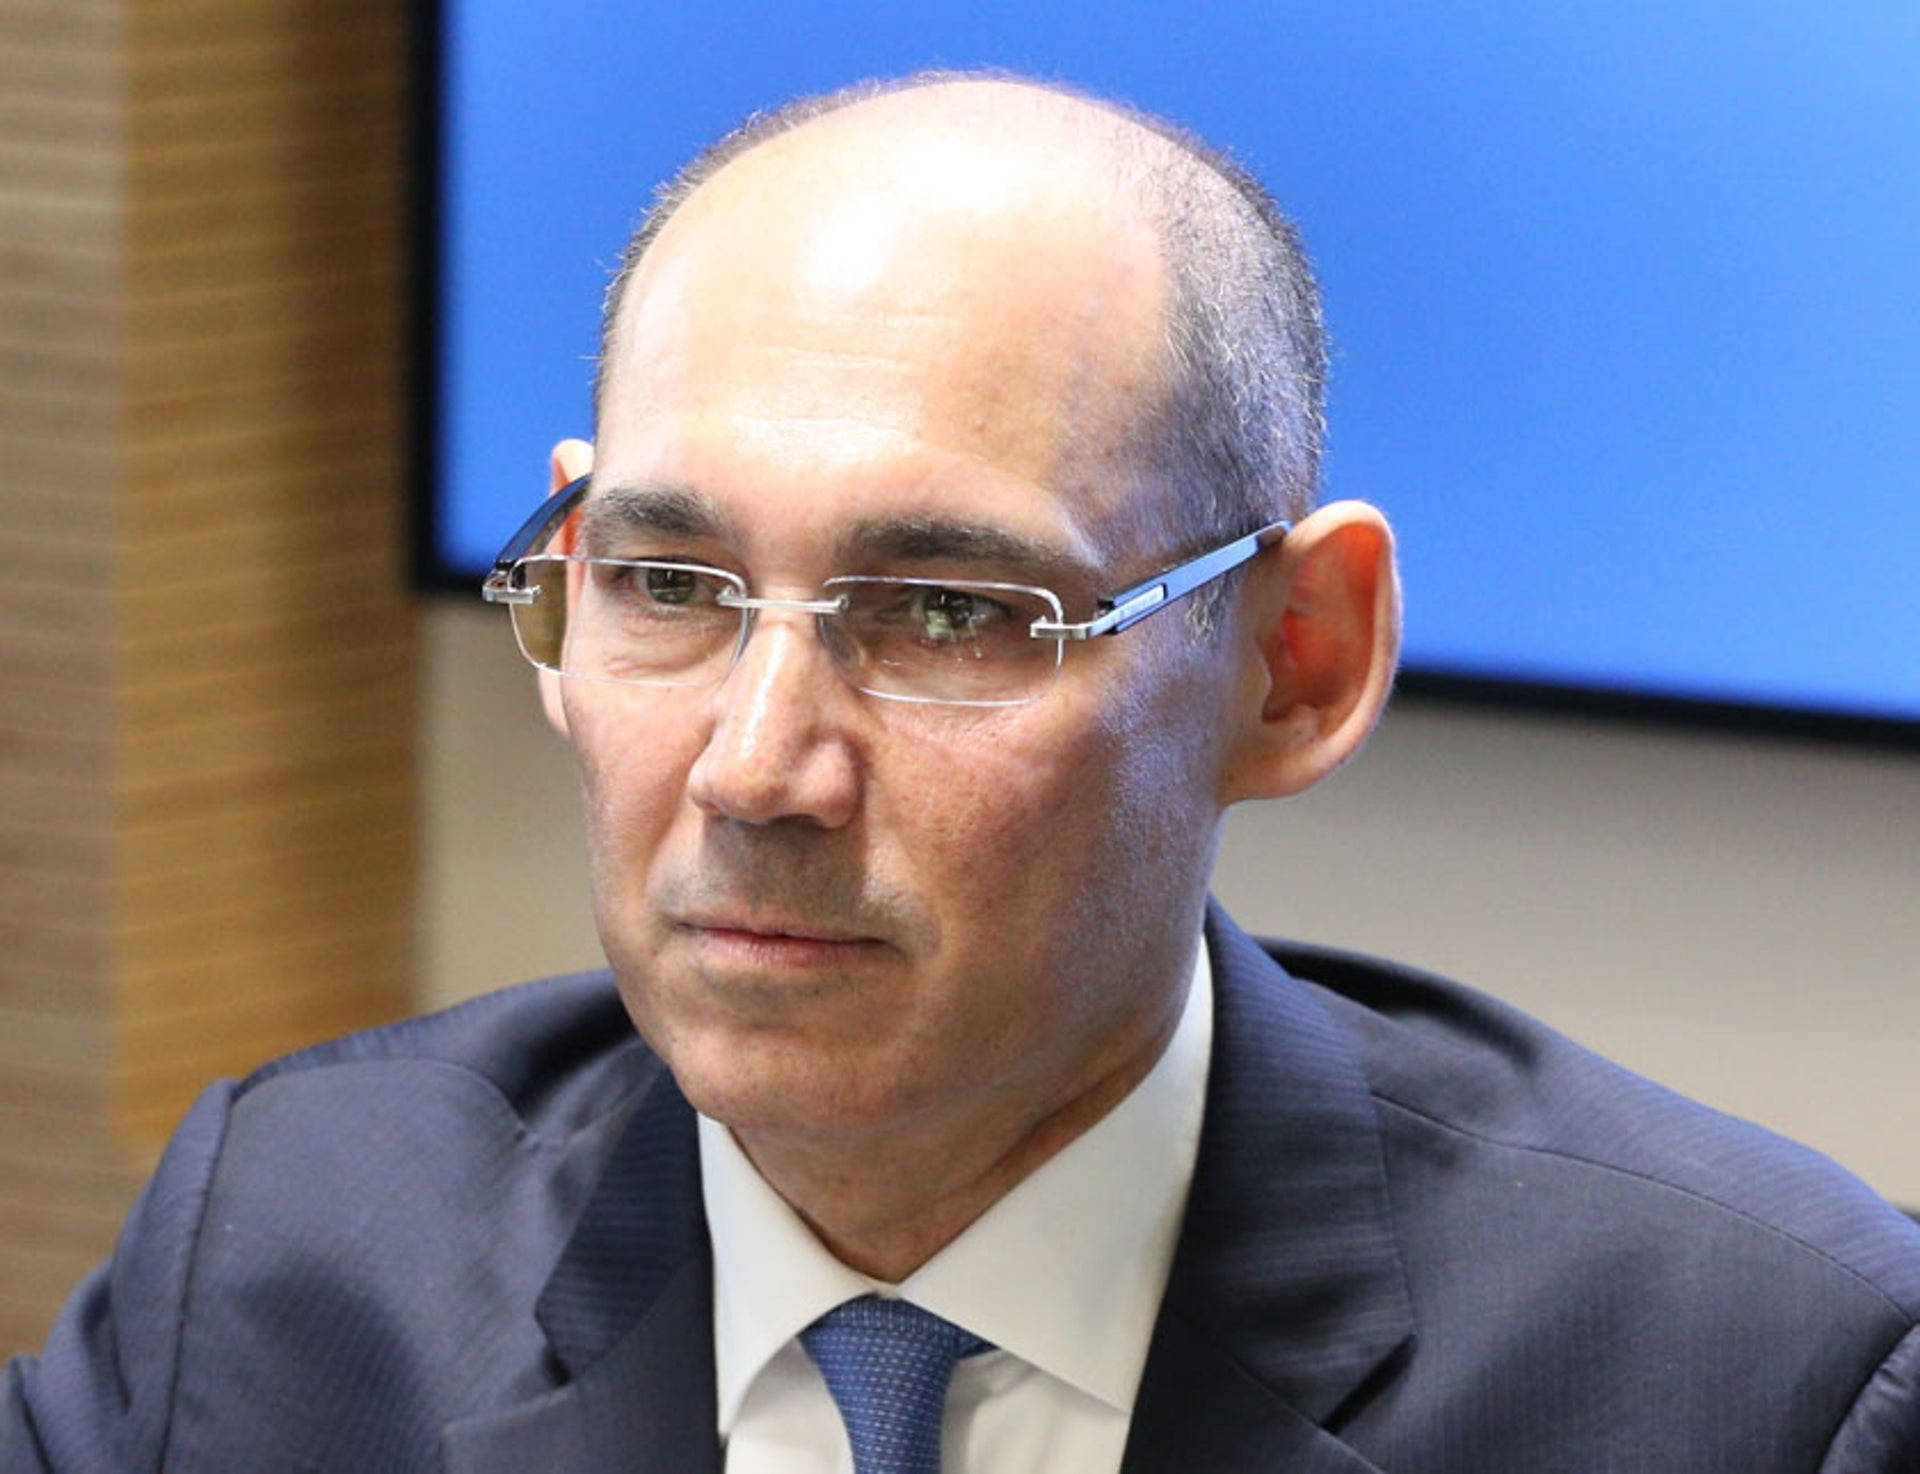 Bank of Israel governor Amir Yaron